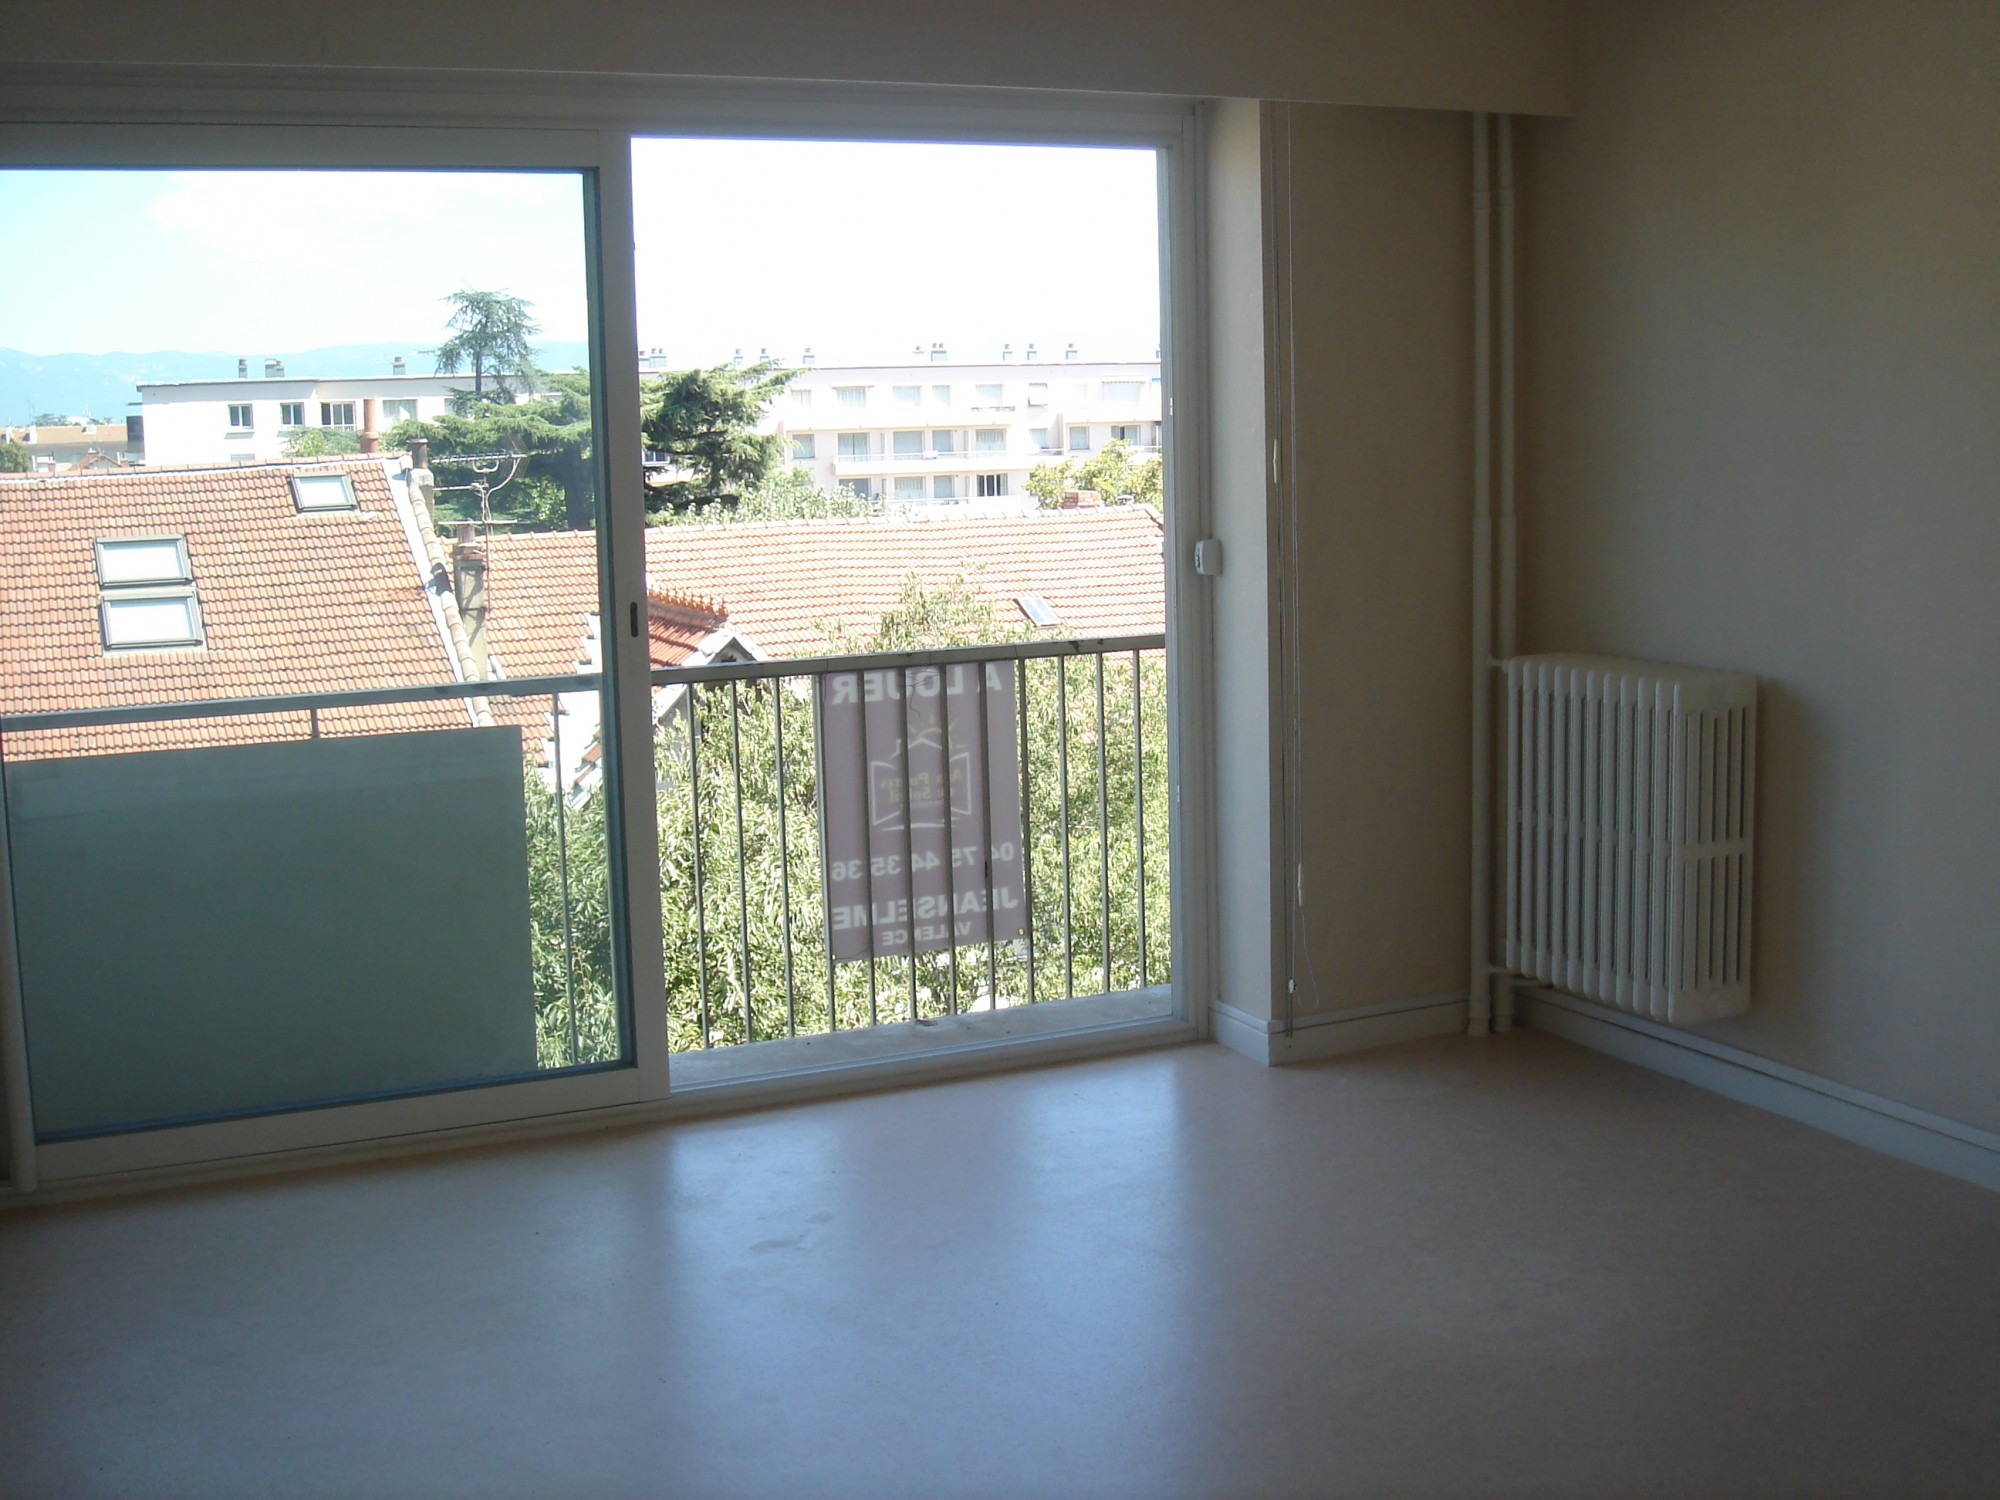 Appartement en location sur valence victor hugo t4 avec for Agence immobiliere valence